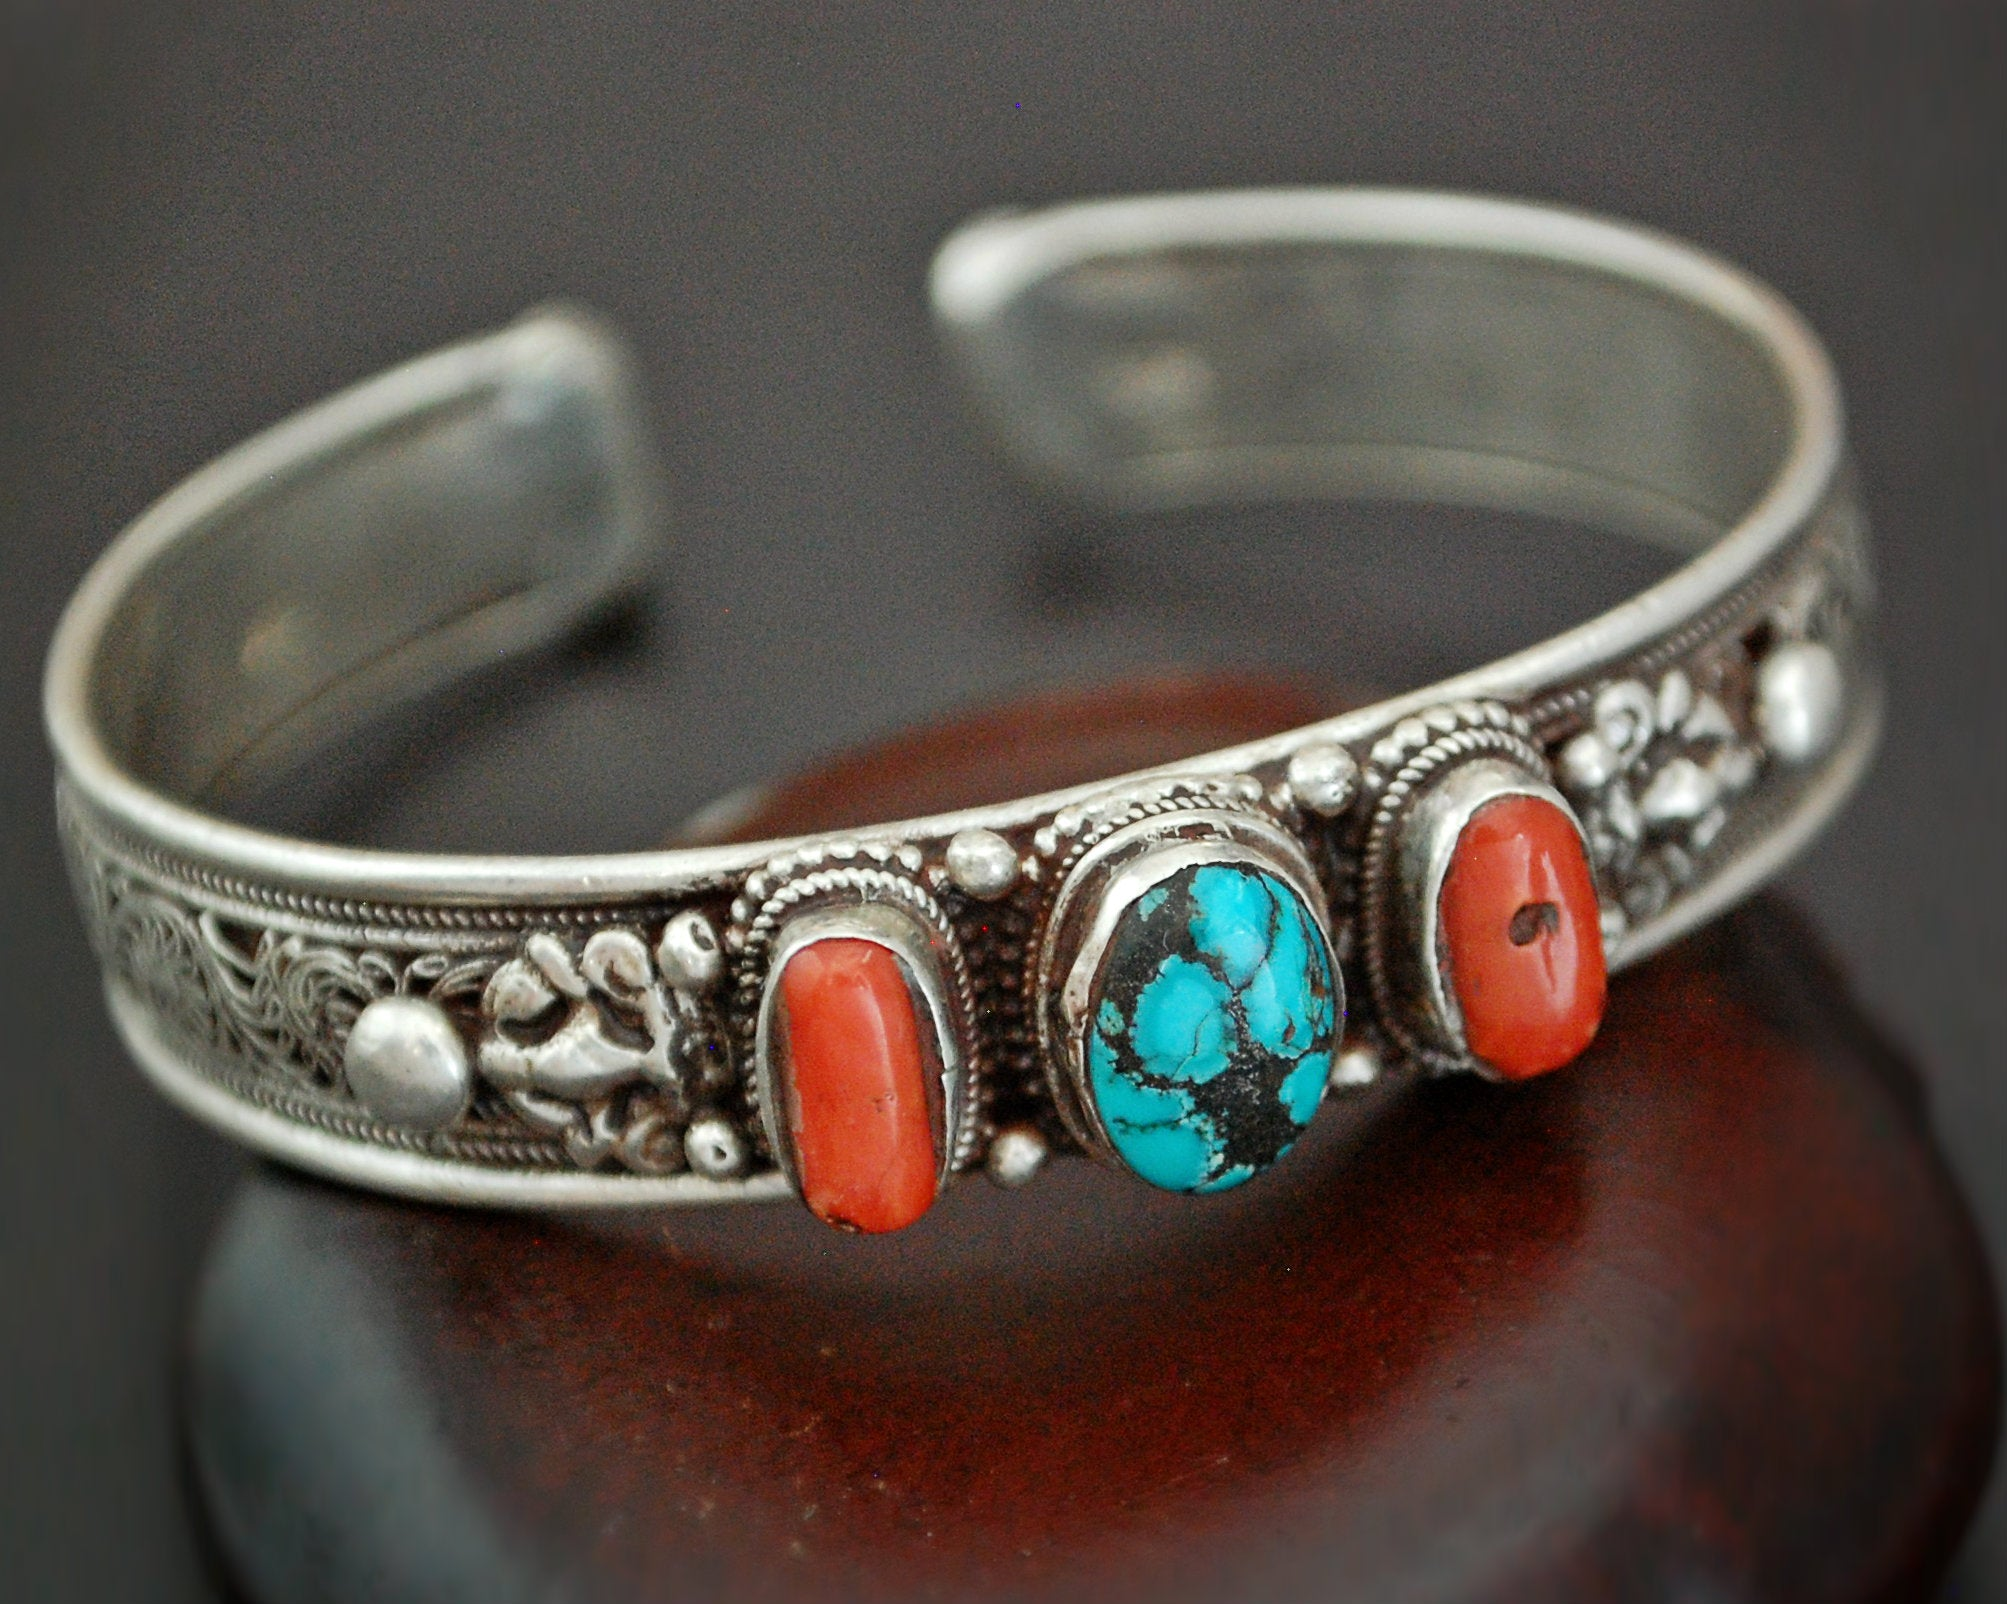 Nepali Turquoise Coral Cuff Bracelet with Filigree Work